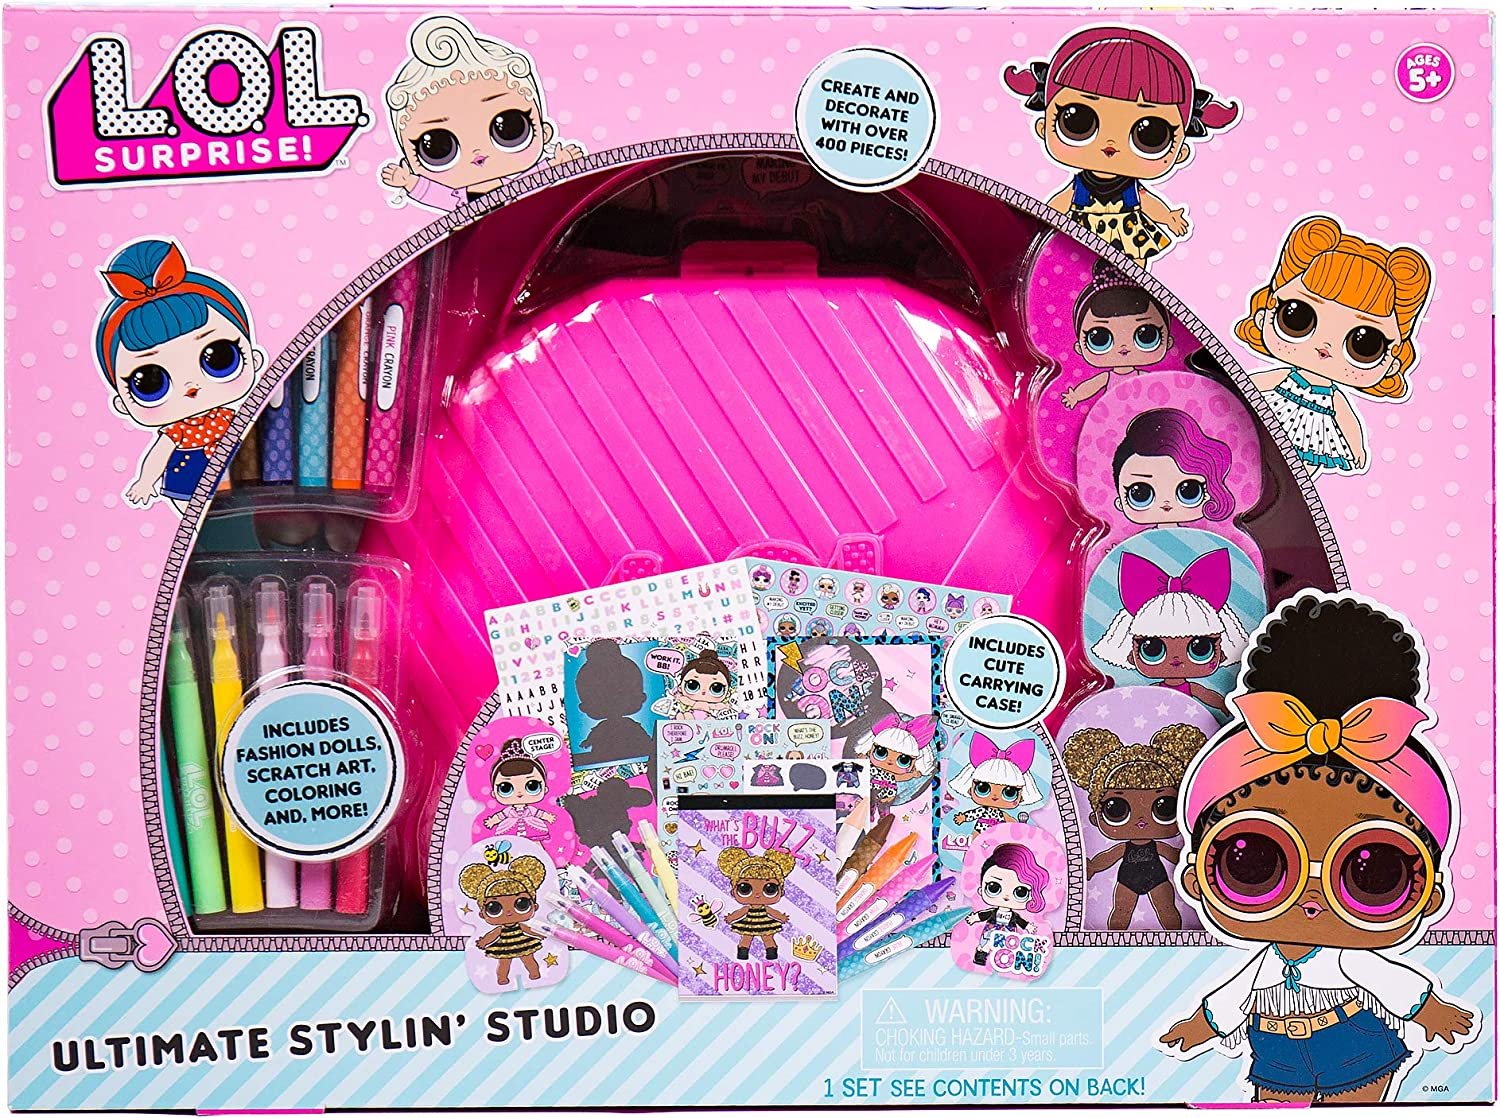 Amazon.com: L.O.L. Surprise! Kit Includes Paper Dolls, Sticker Sheets,  Scratch Art Sticker & Sheets, Sketchbook,Crayons,Mini Markers & More, Model  Number: 90147: Toys & Games